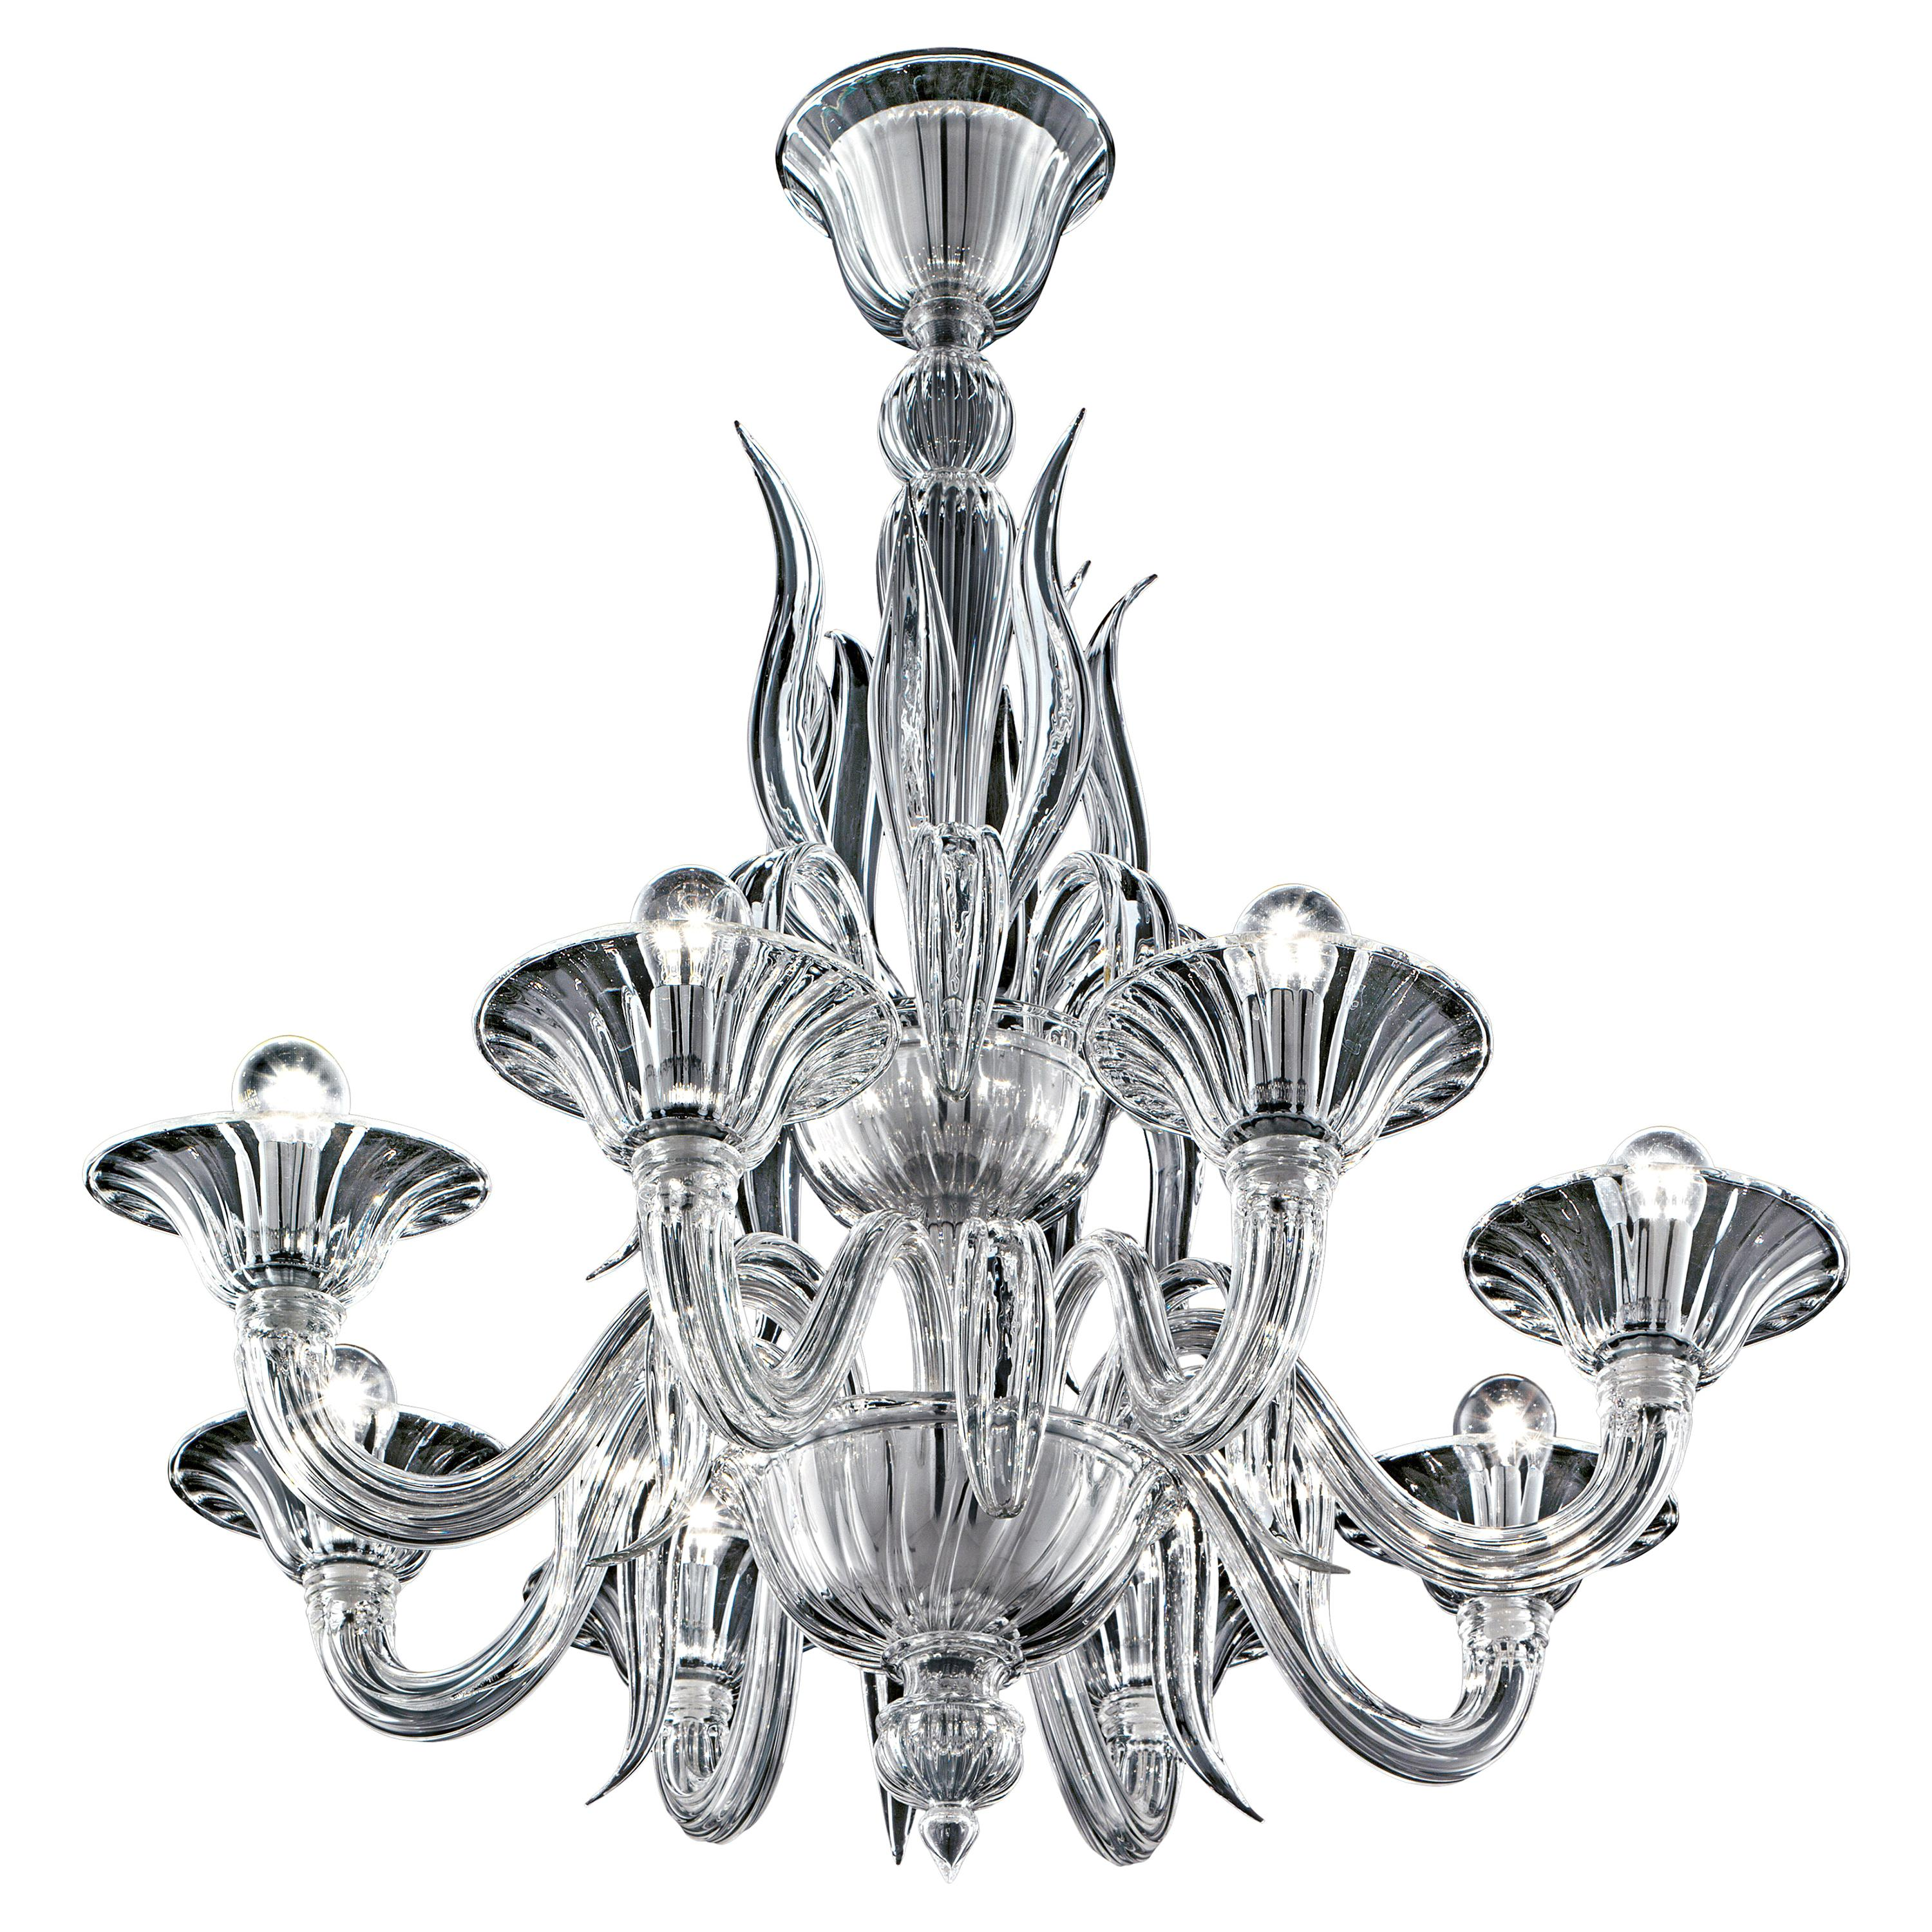 Fauve 5306 08 Chandelier in Glass, by Barovier&Toso